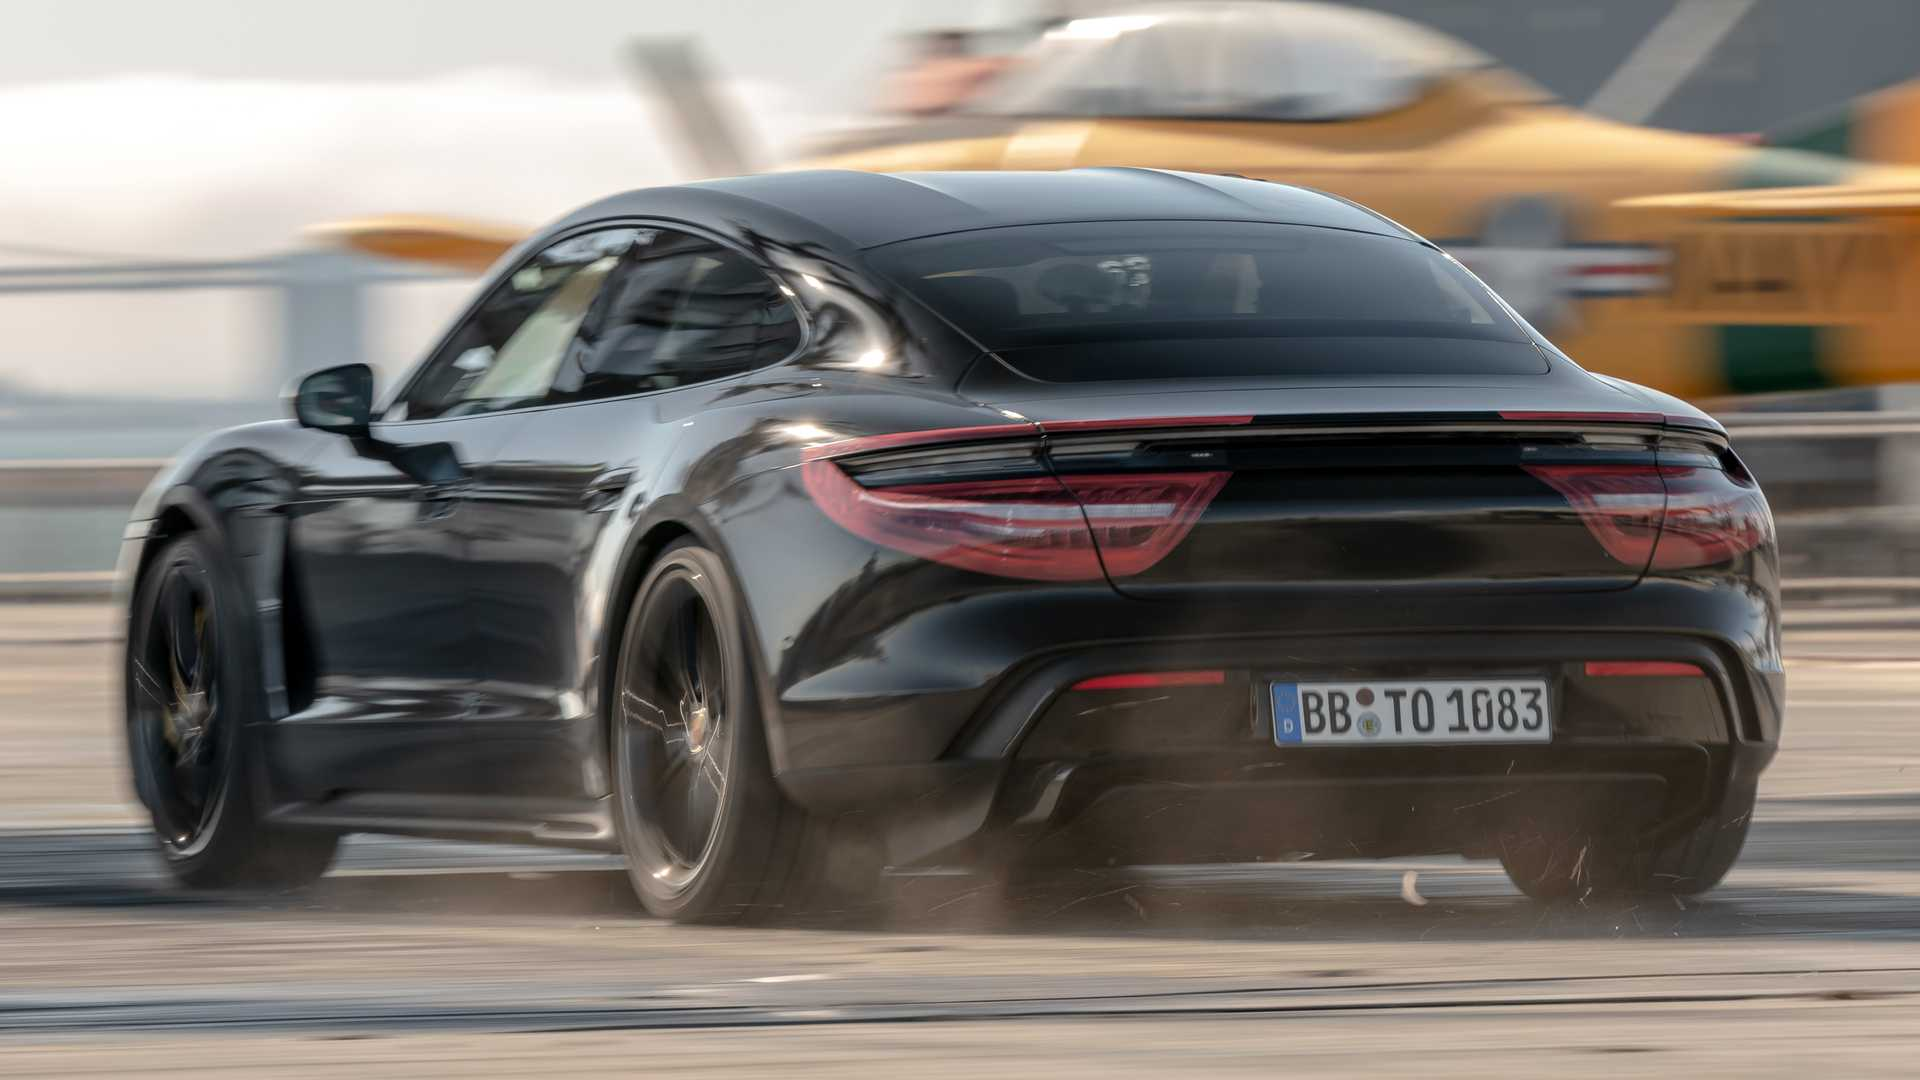 Porsche Taycan does 0-90-0 mph In 10.17 seconds on aircraft carrier